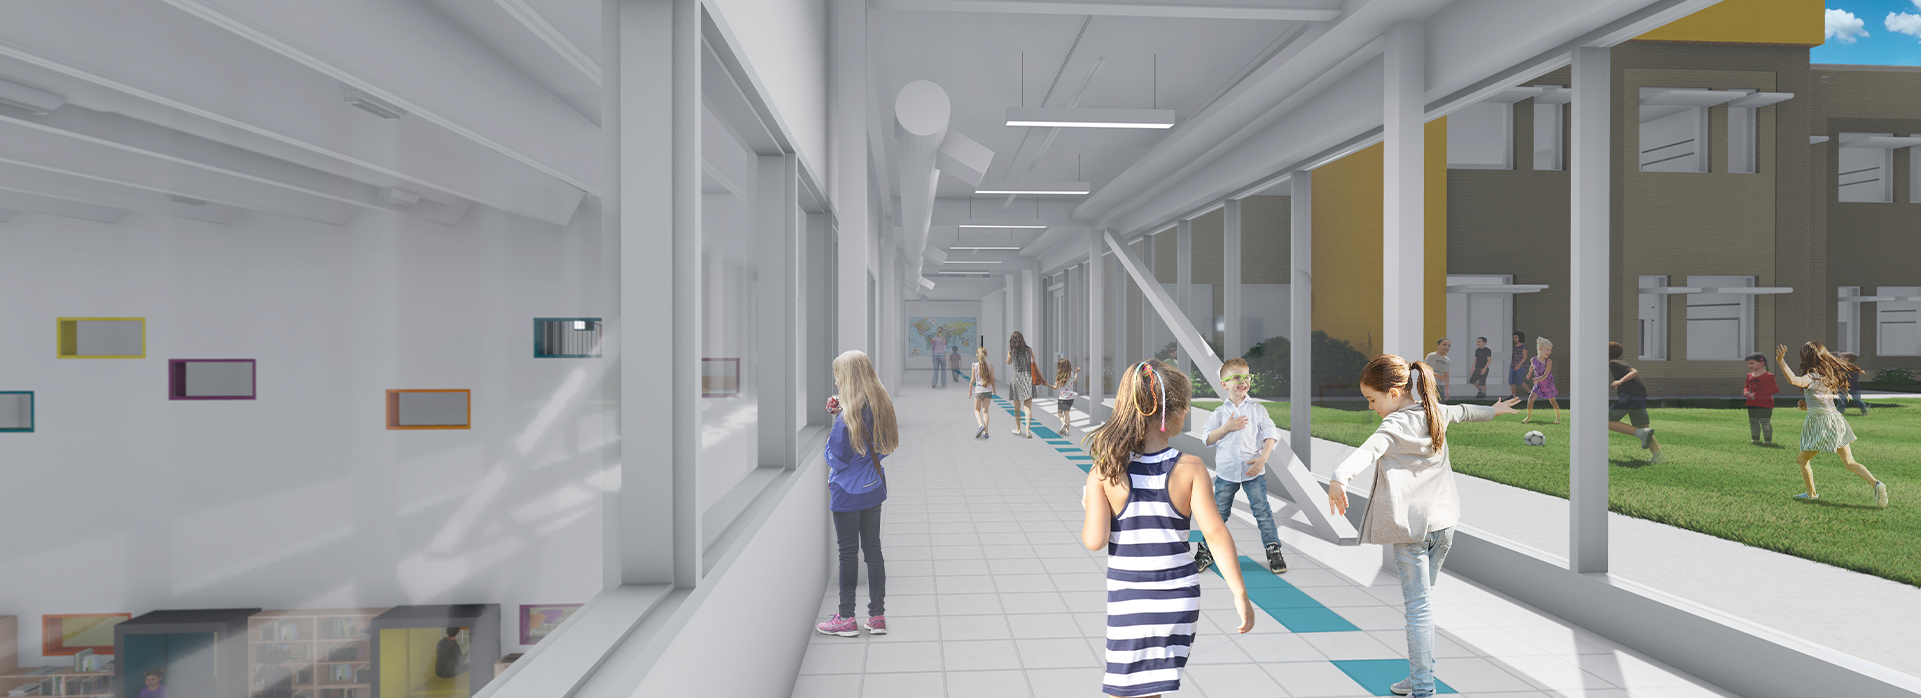 35 North Provides Cost Estimating Services to the Wake County Public School System for the Renovation of Conn Elementary School in Raleigh, NC